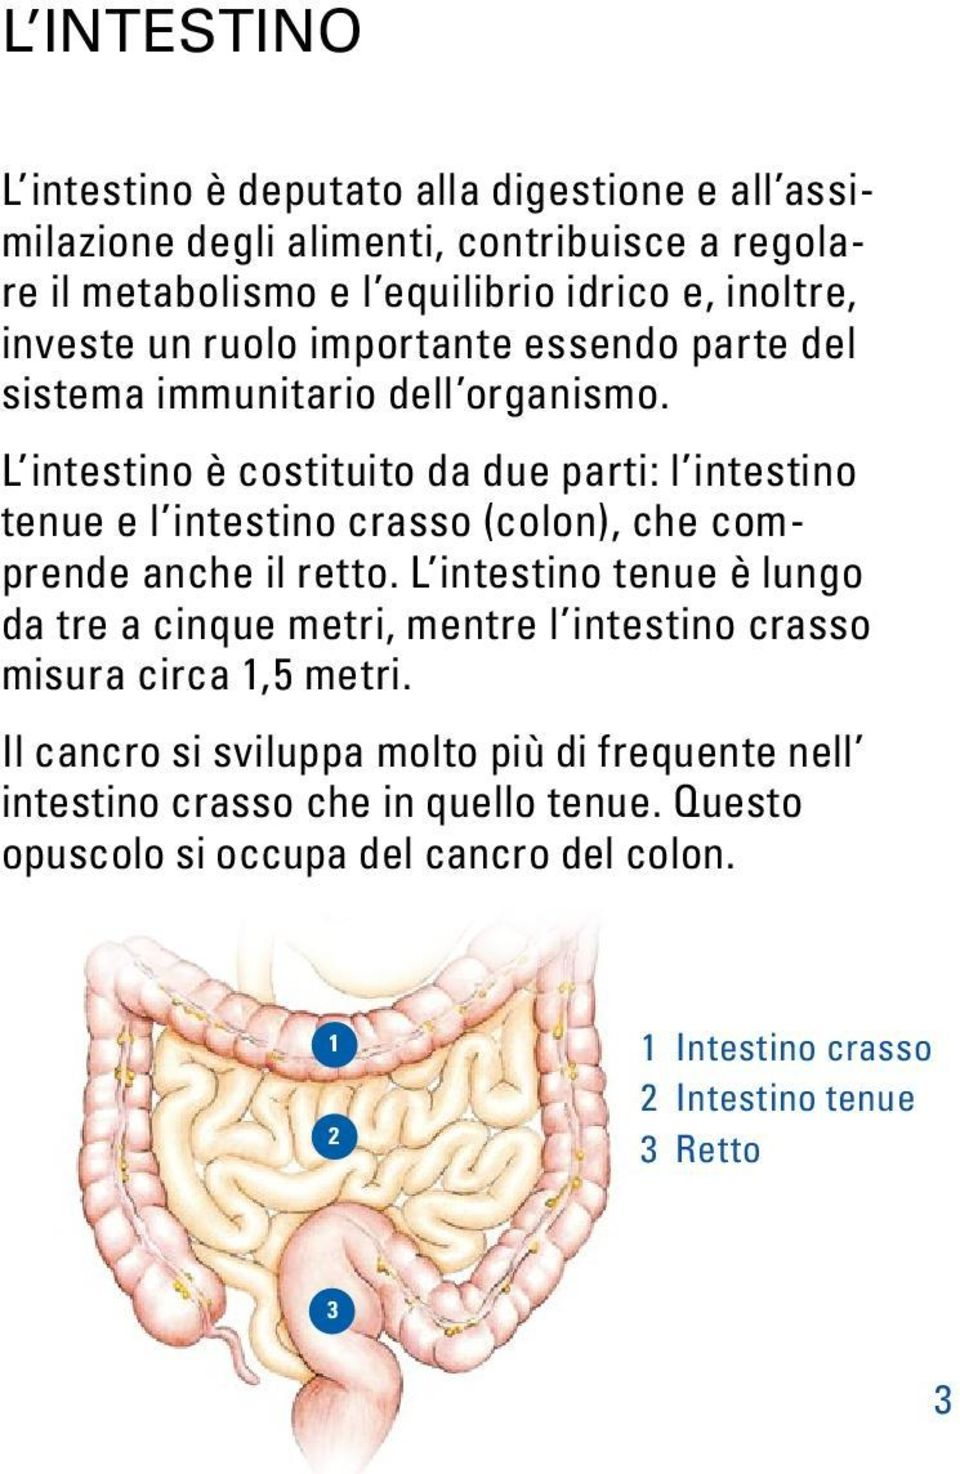 L intestino è costituito da due parti: l intestino tenue e l intestino crasso (colon), che comprende anche il retto.